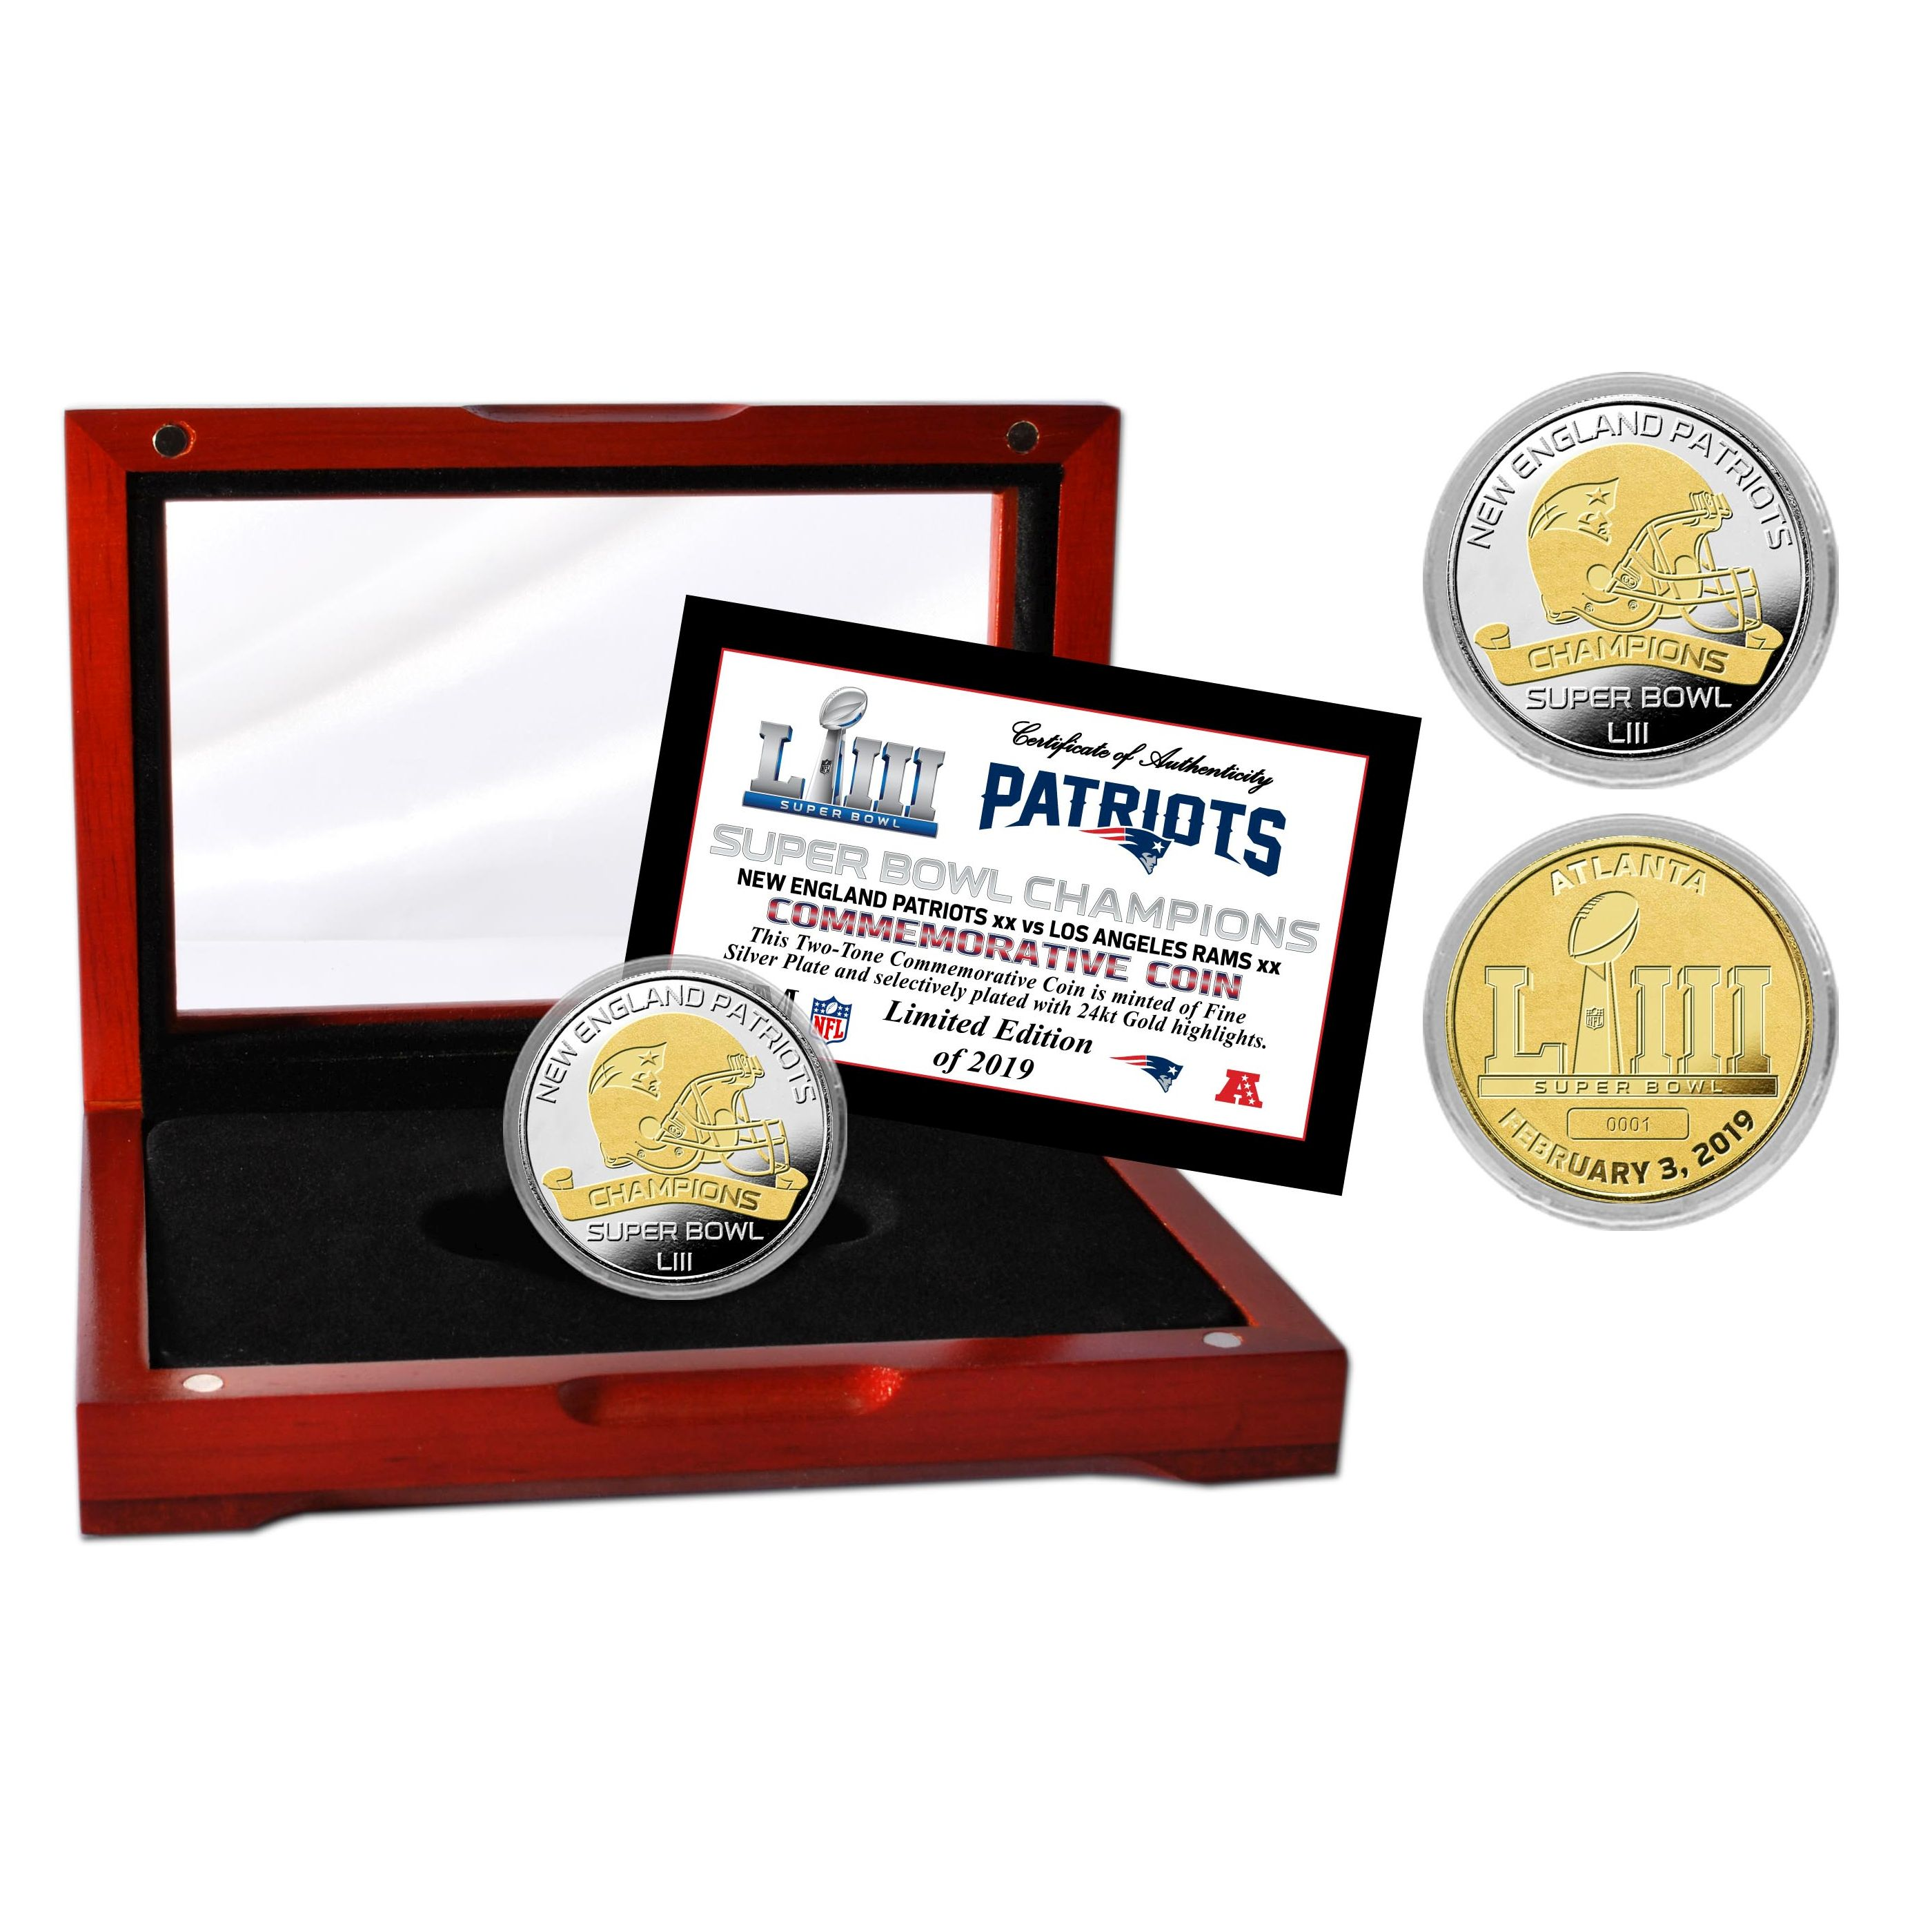 New England Patriots Super Bowl 53 Champions Two-Tone Mint Coin